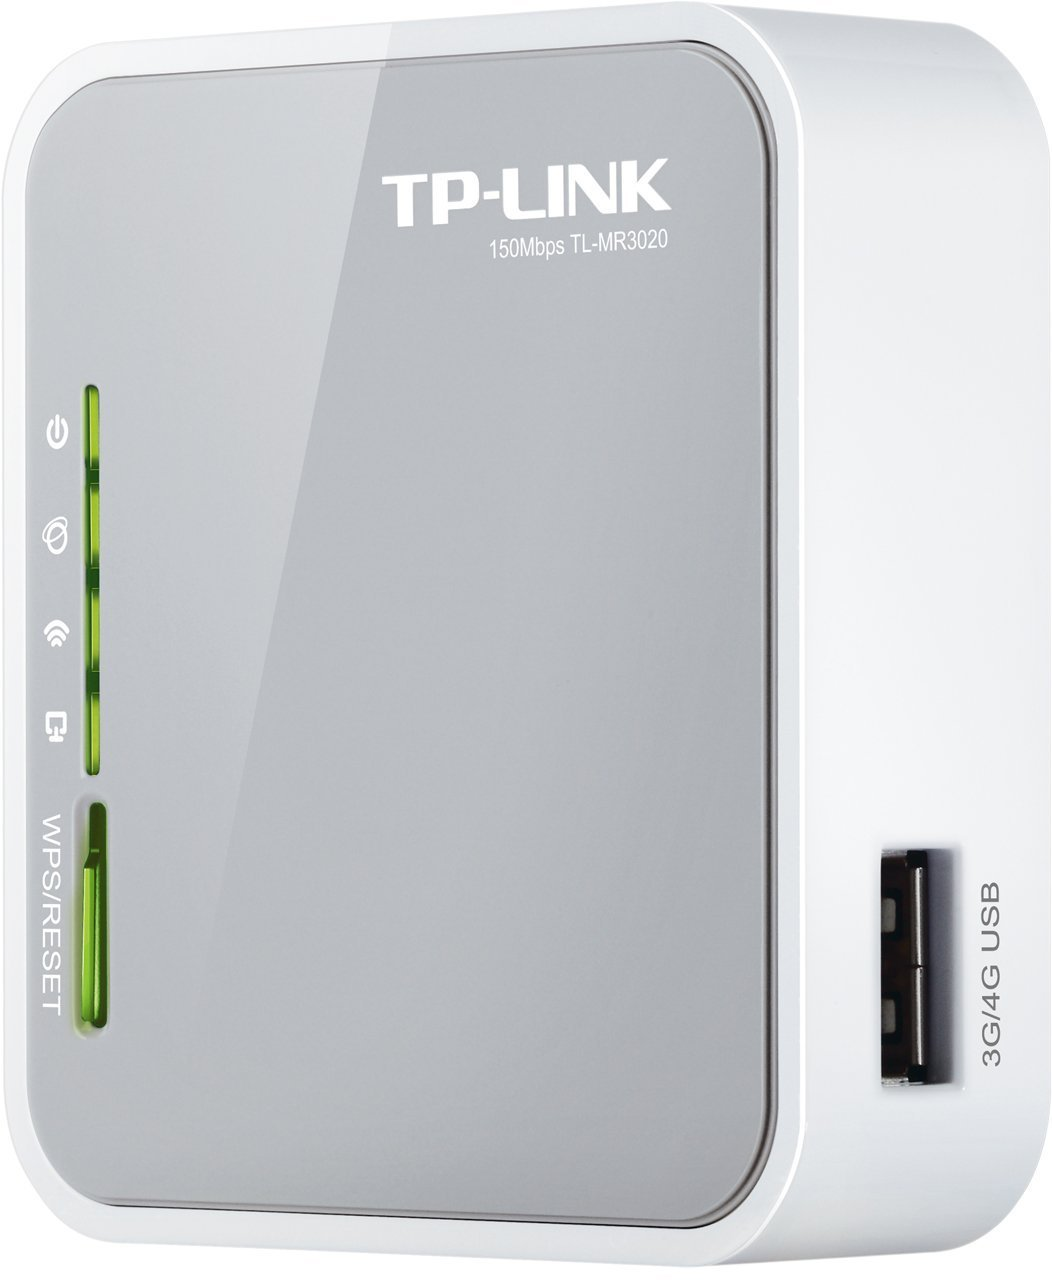 TP-Link N150 Wireless 3G4G Portable Router